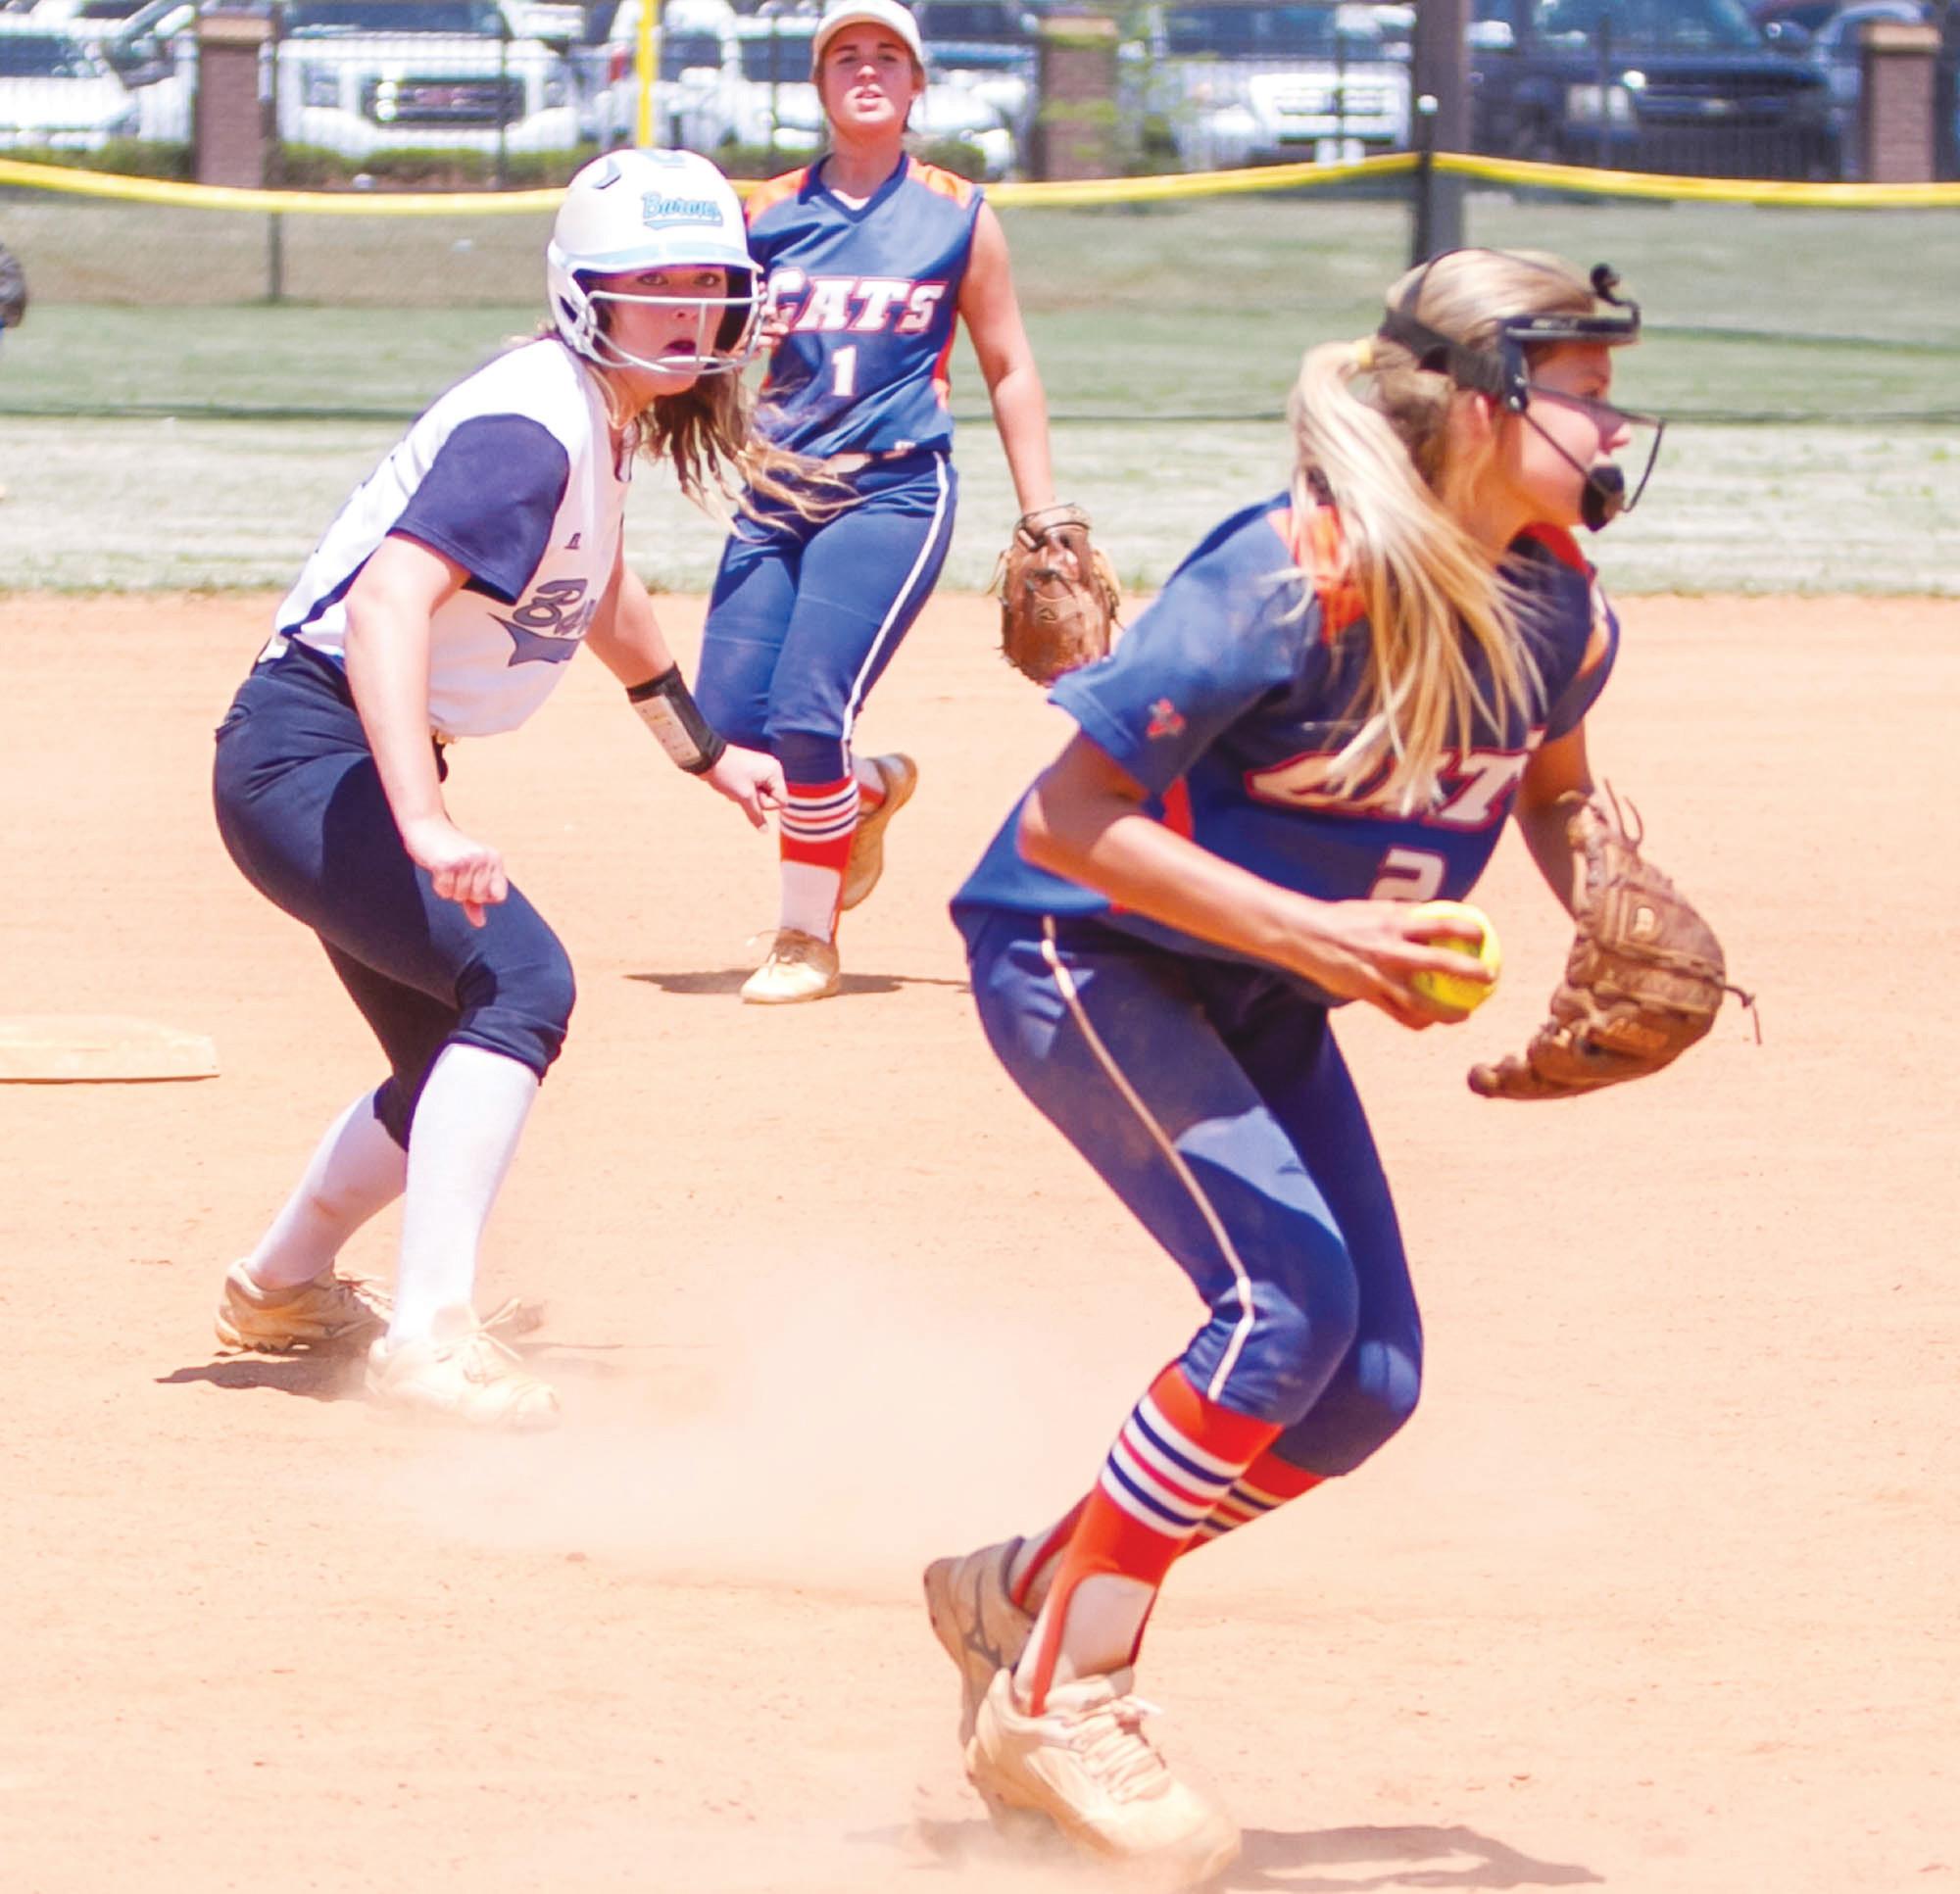 Laurence Manning's XXX holds a Wilson Hall baserunner at second before going to first for the out during the Lady Swampcats' 10-0 loss to archrival Wilson Hall in the state 1A championship series.